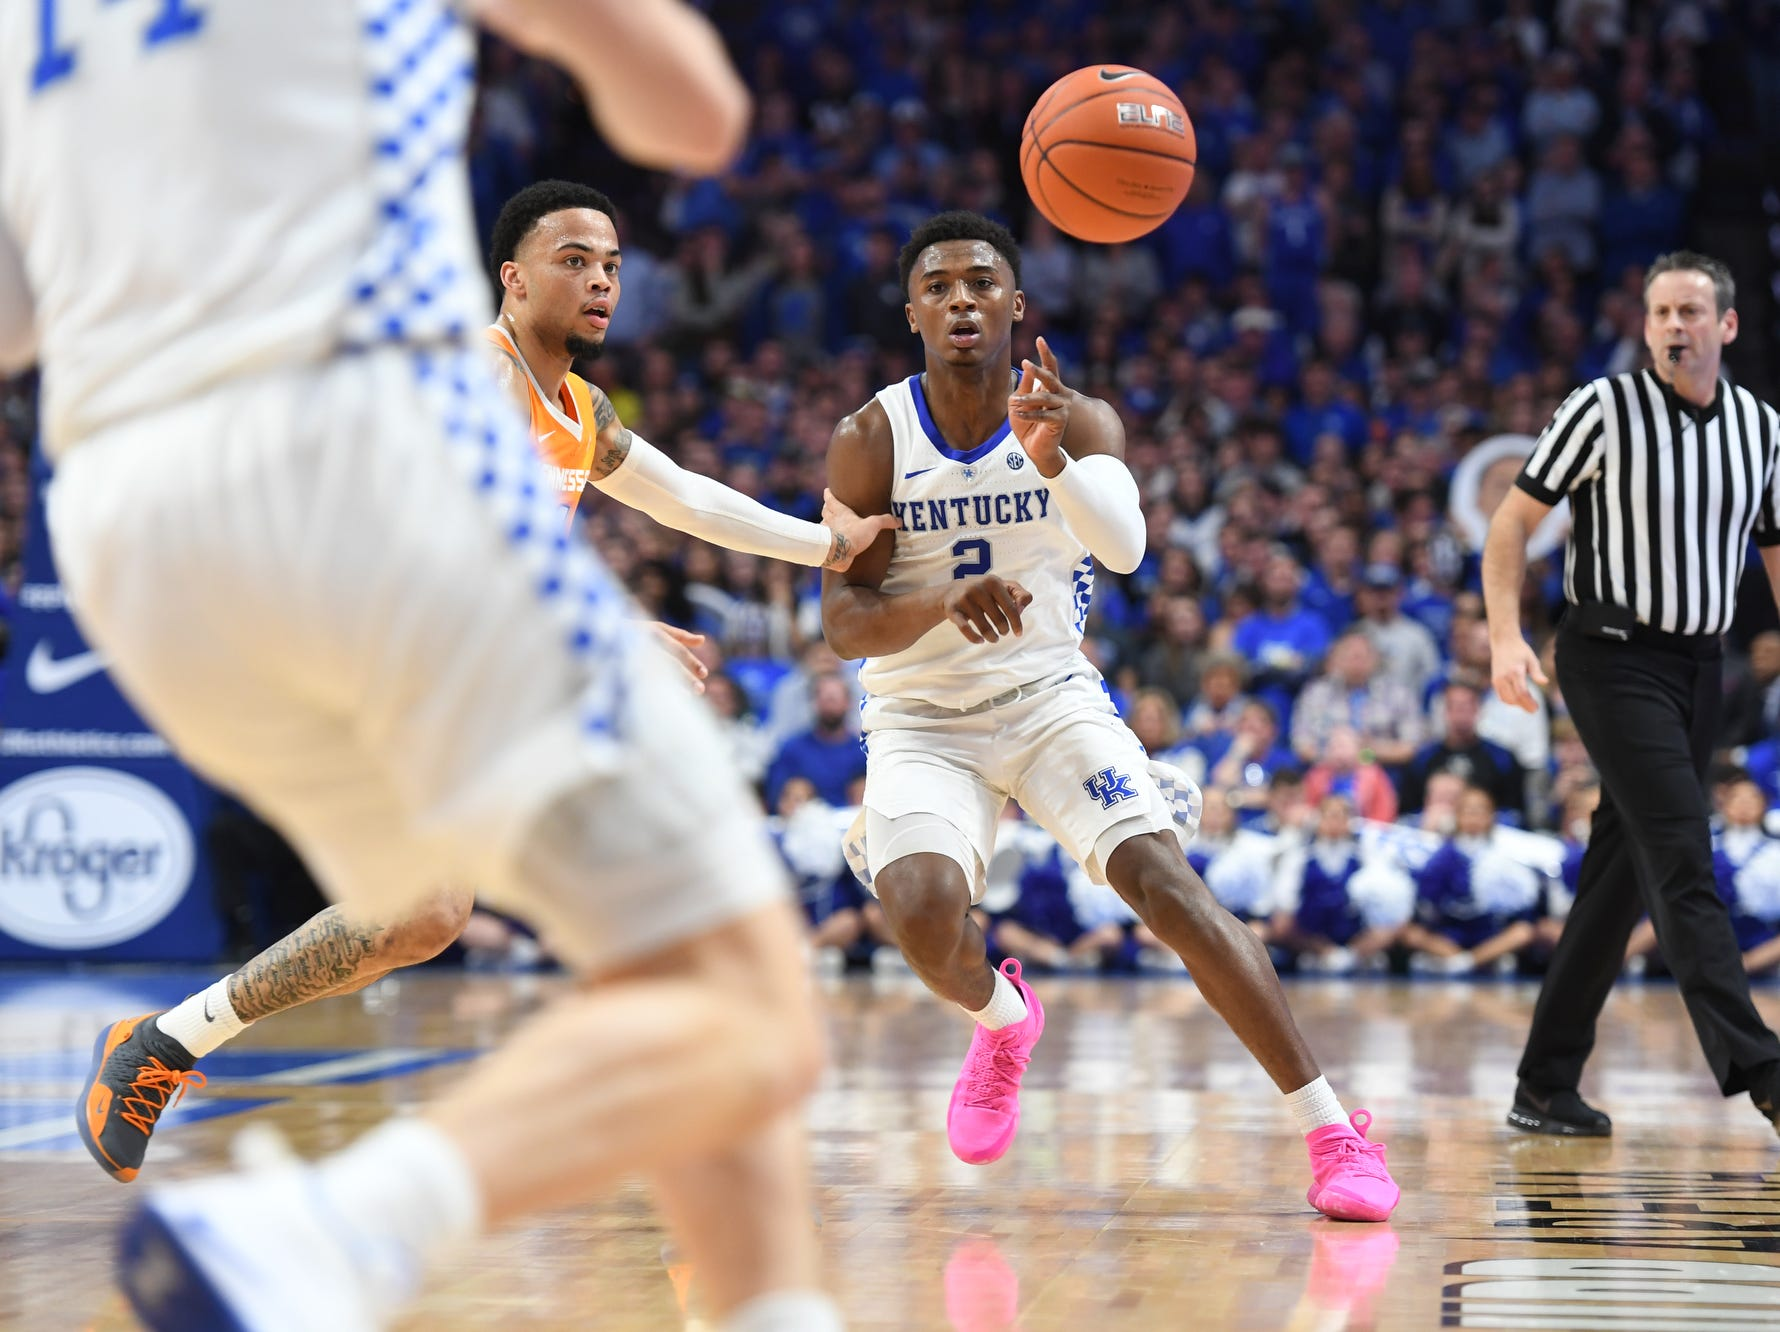 UK G Ashton Hagans passes the ball during the University of Kentucky mens basketball game against Tennessee at Rupp Arena in Lexington, Kentucky on Saturday, February 16, 2019.